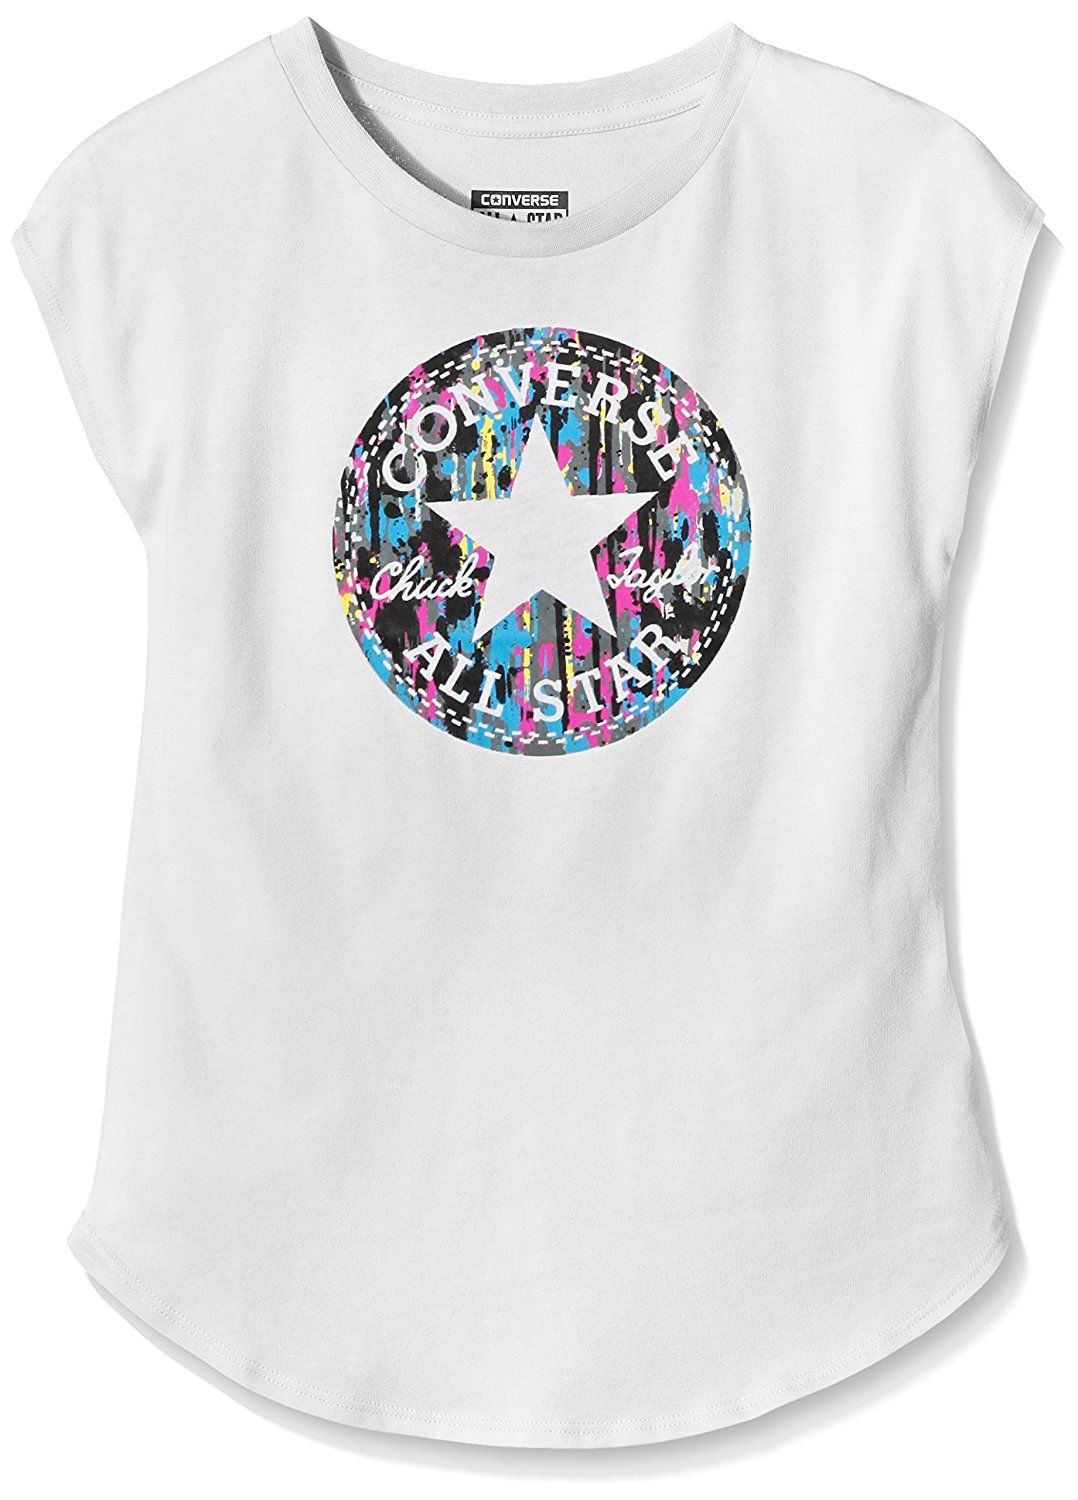 Converse girls dropped shoulder fitted tshirt girls